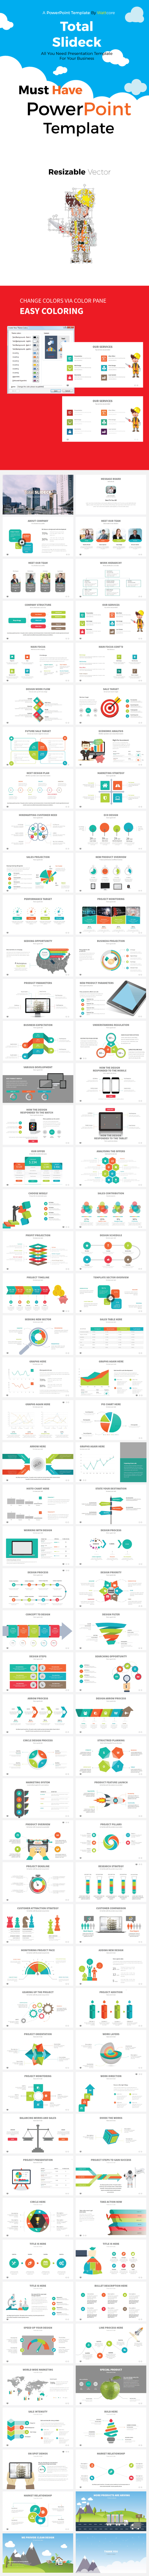 Slideck Presentation Template - Business PowerPoint Templates